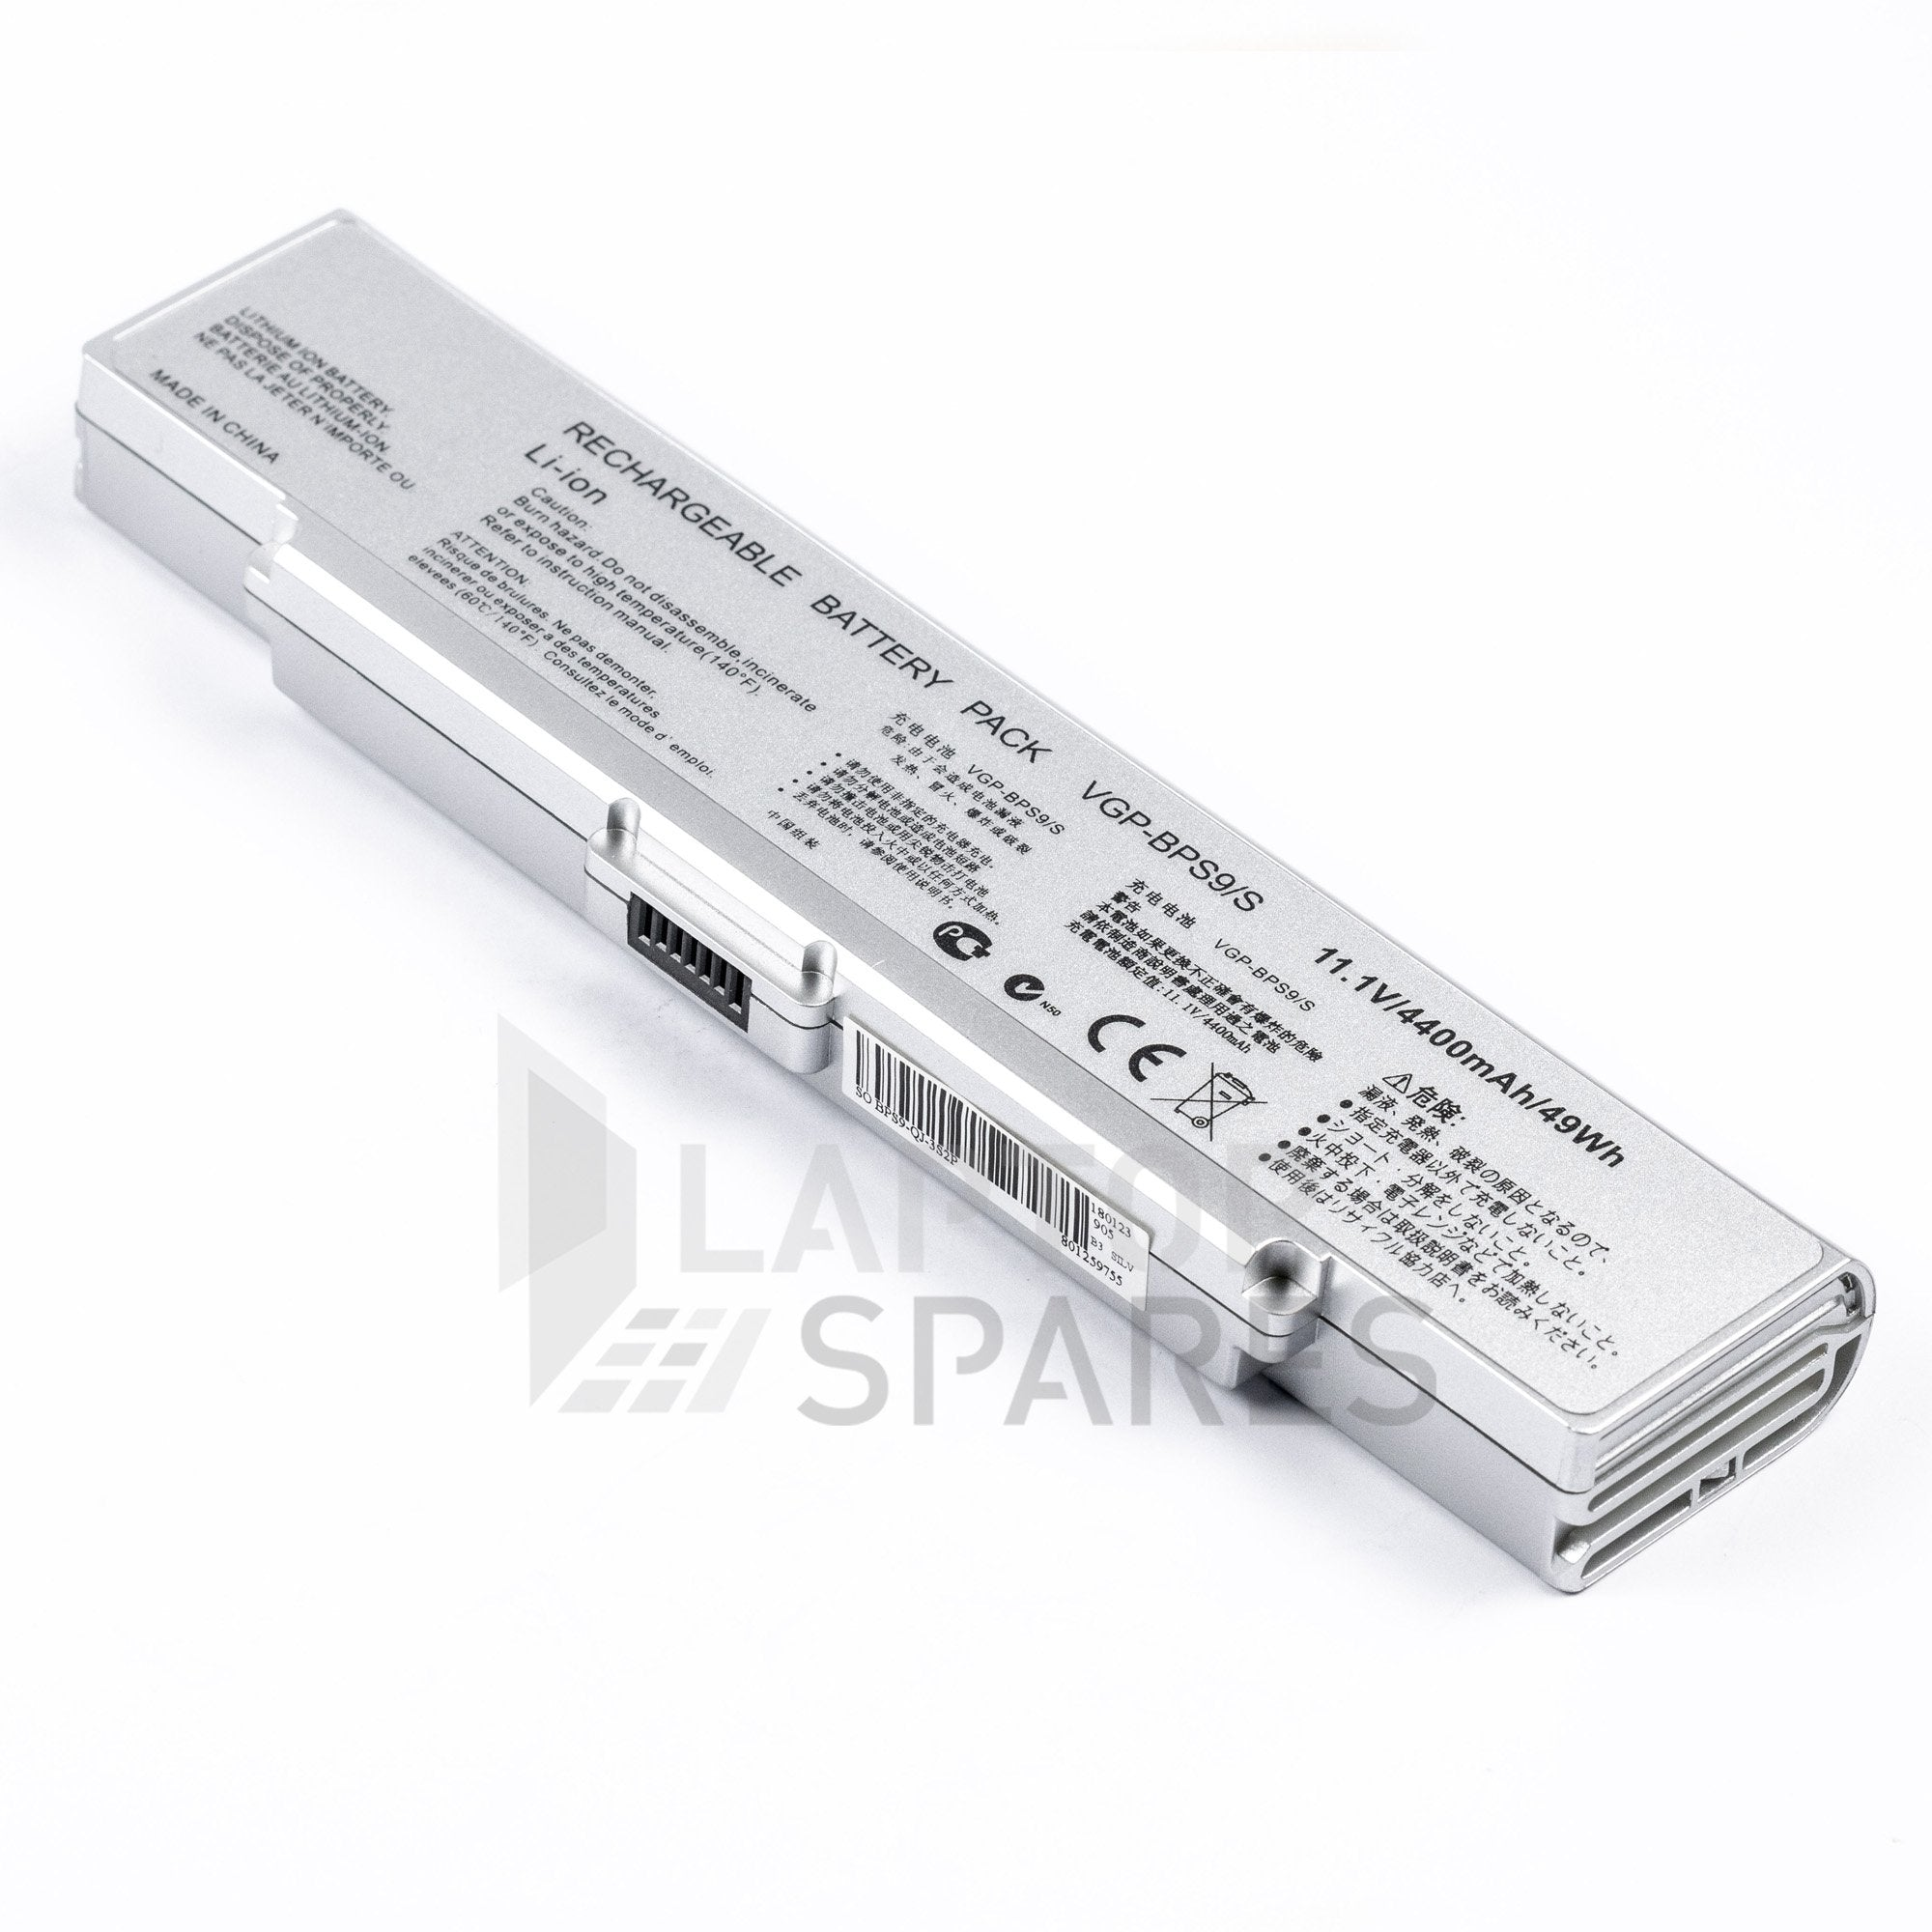 Sony VAIO VGN-NR498E/T 4400mAh 6 Cell Battery